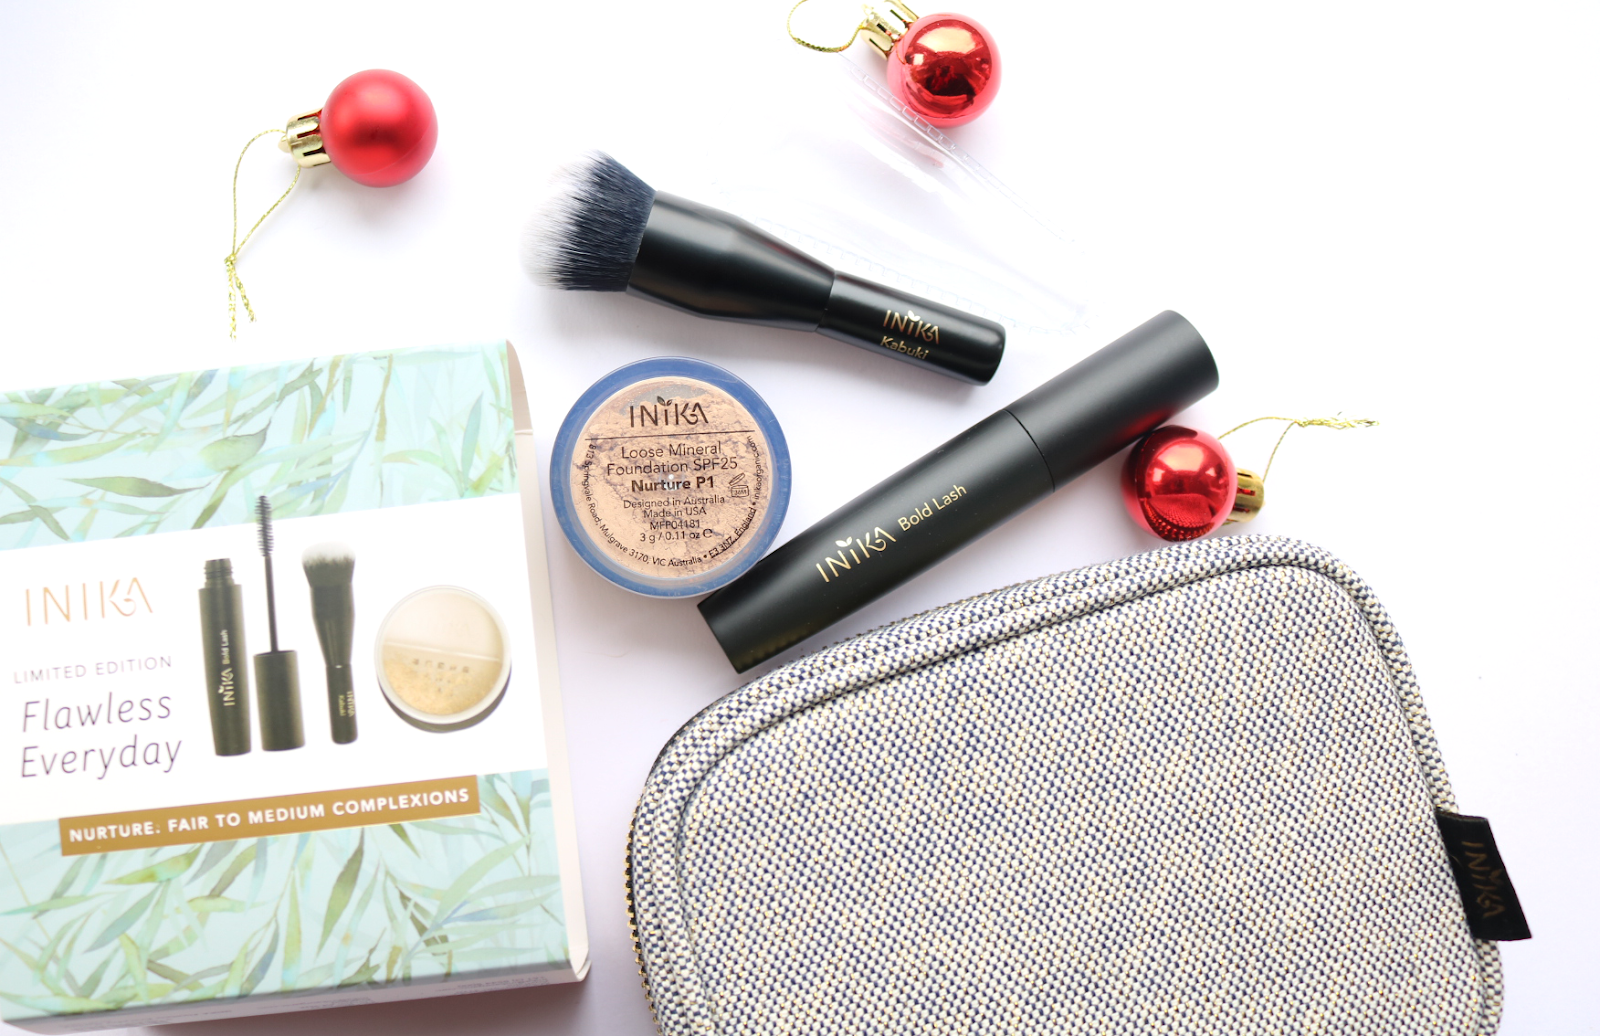 Inika Limited Edition Flawless Everyday Gift Set